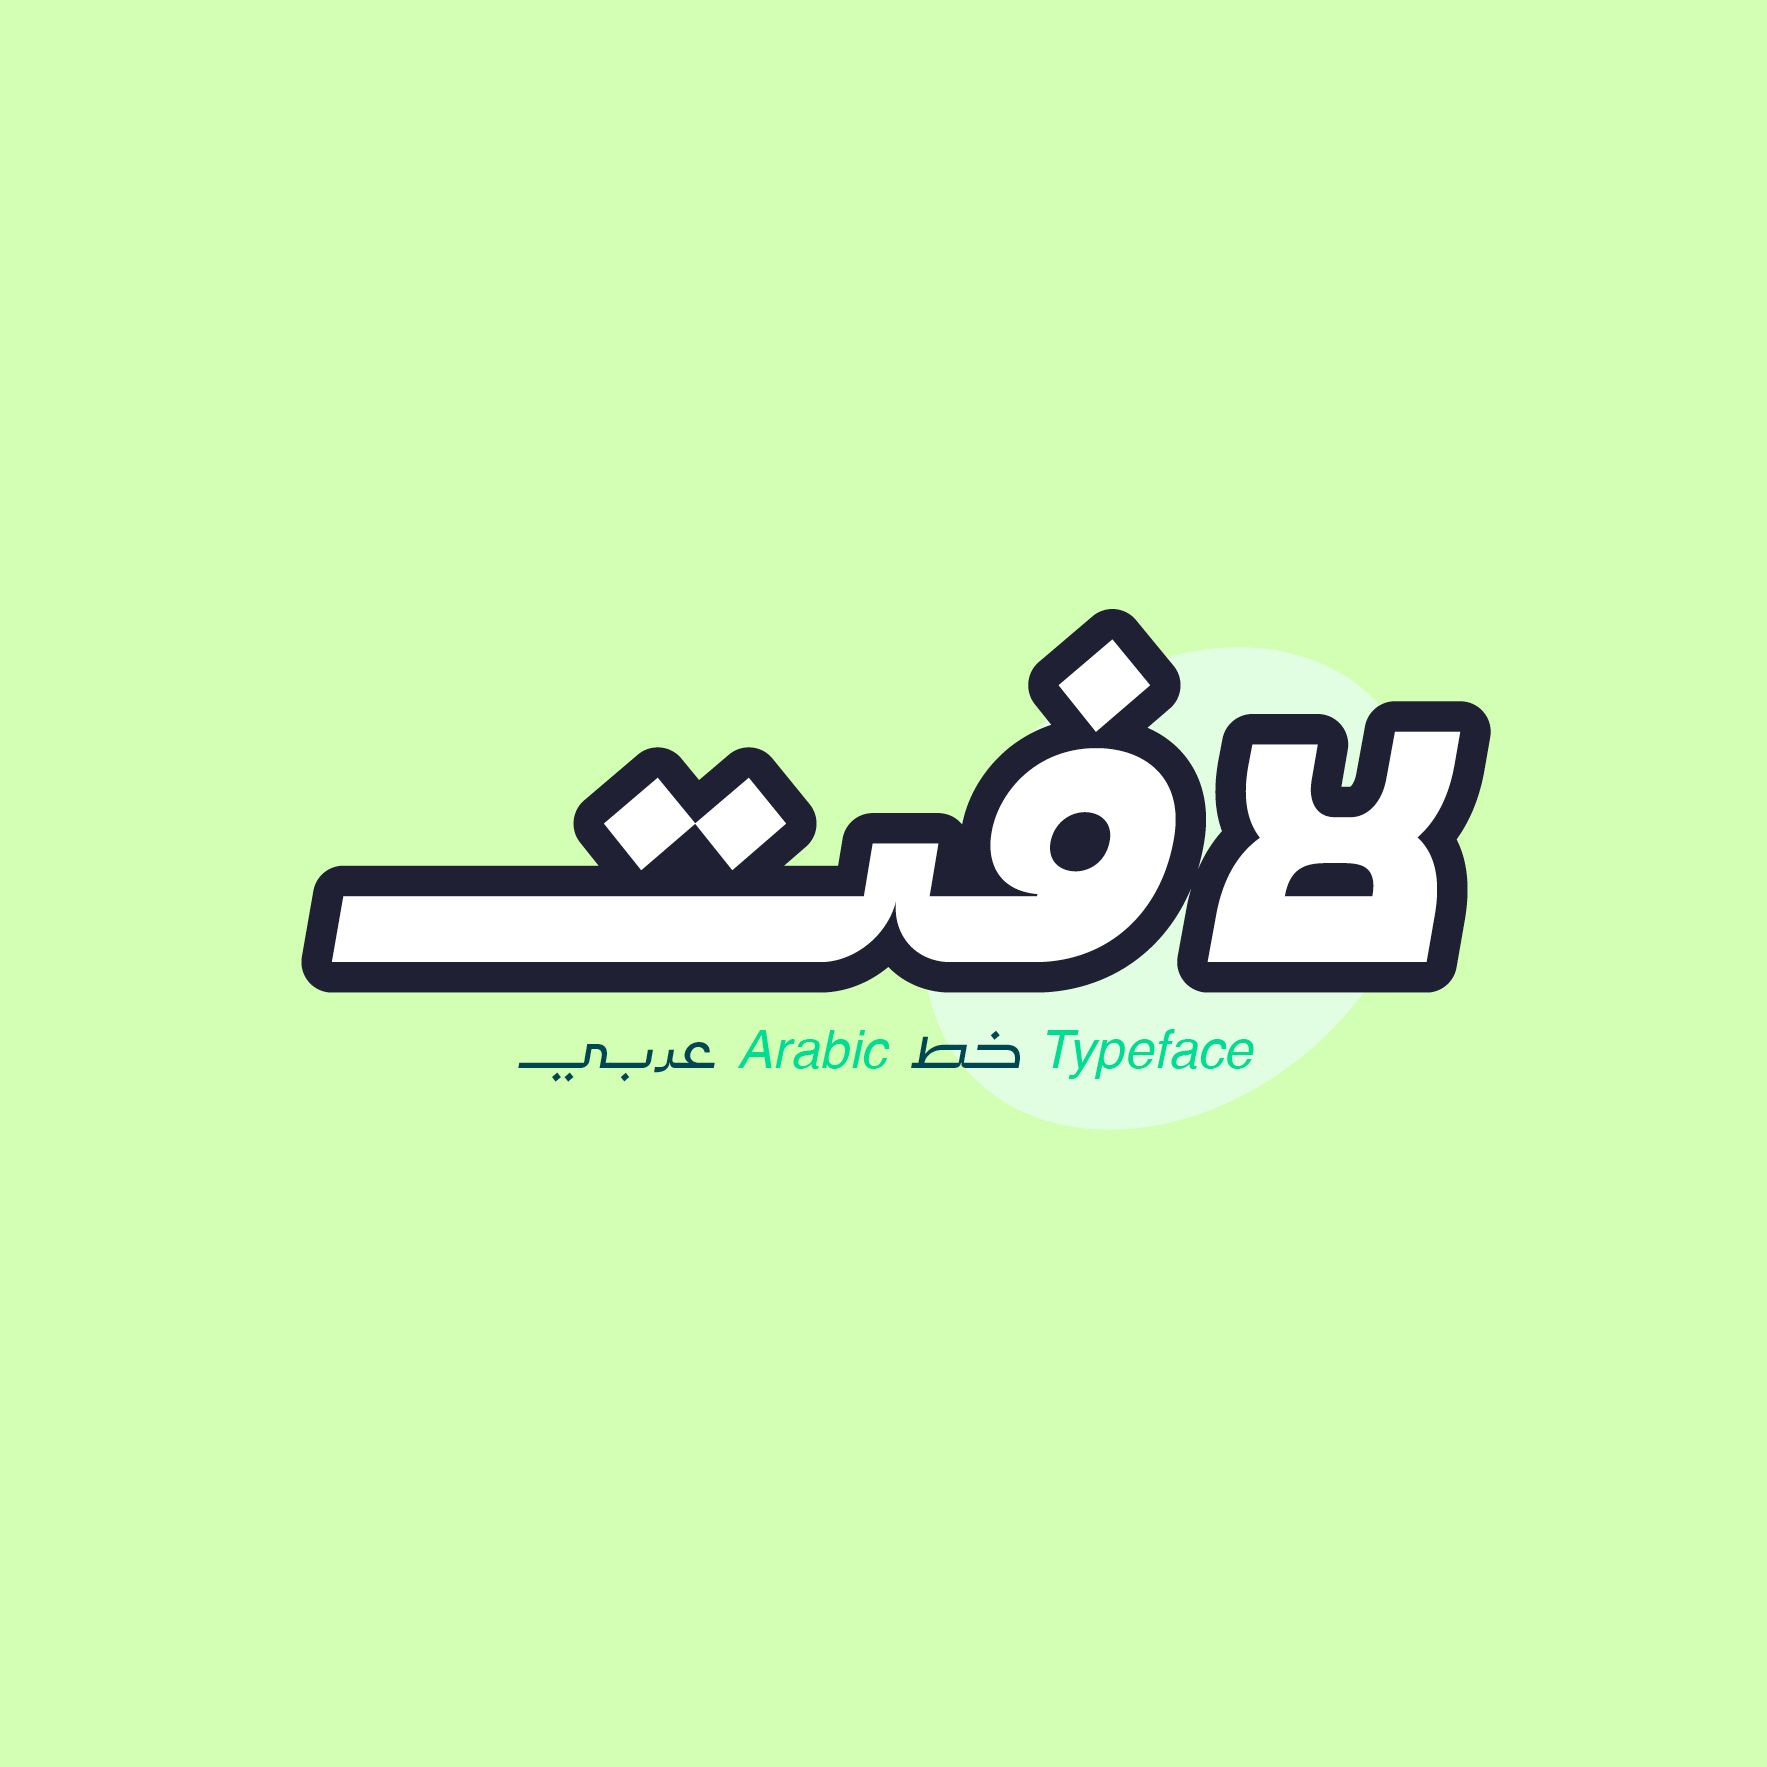 Lafet Arabic Typeface خط عربي In 2020 Typeface Arabic Calligraphy Fonts Arabic Words